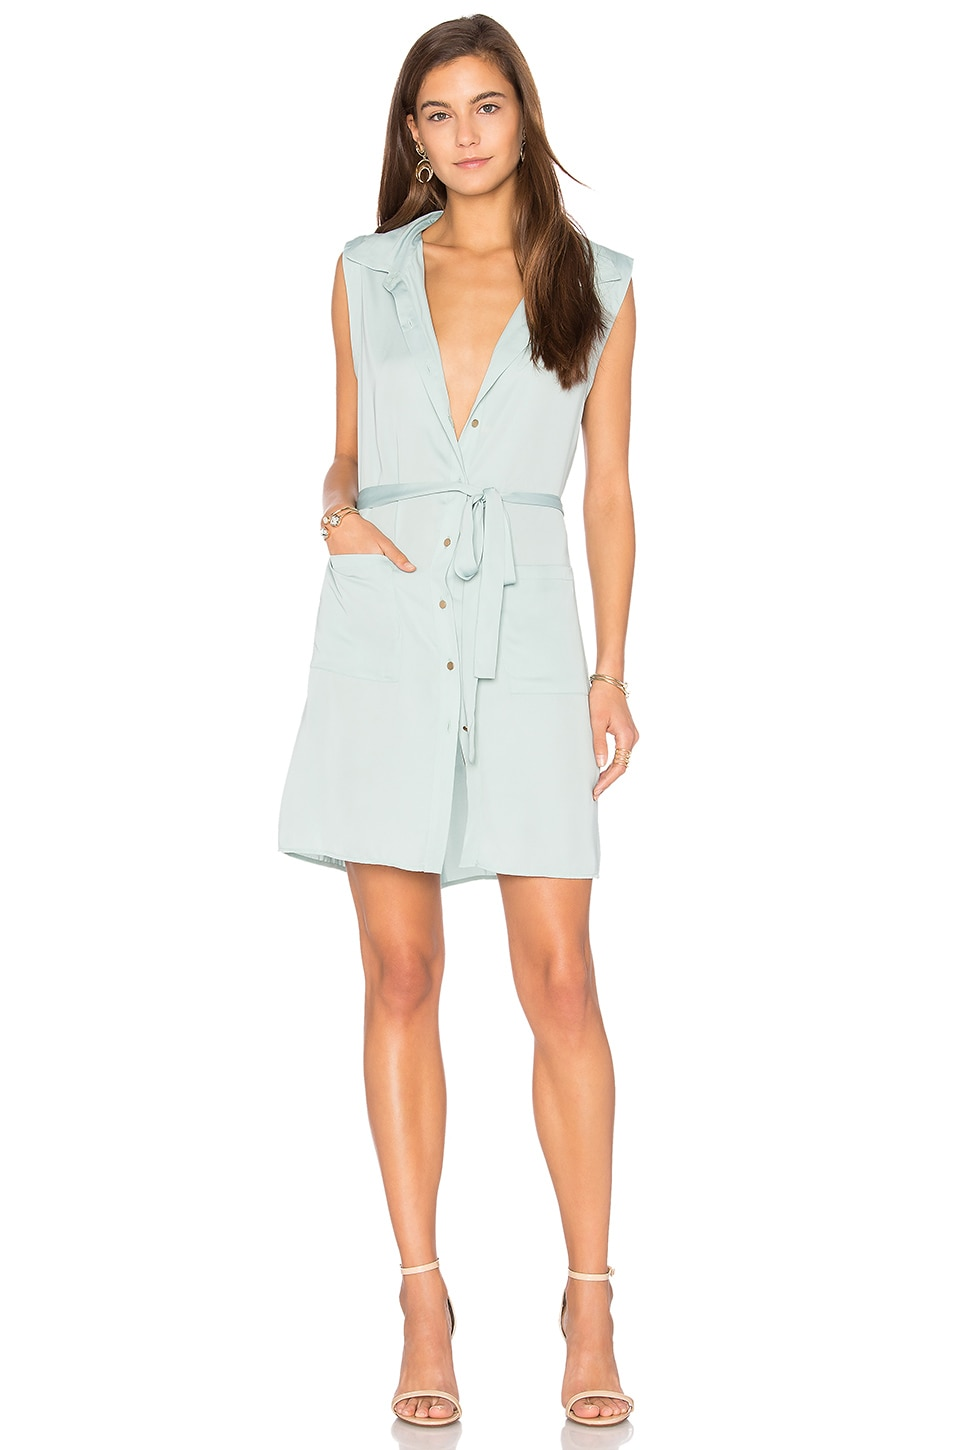 L'Academie The Sleeveless Shirt Dress in Seafoam